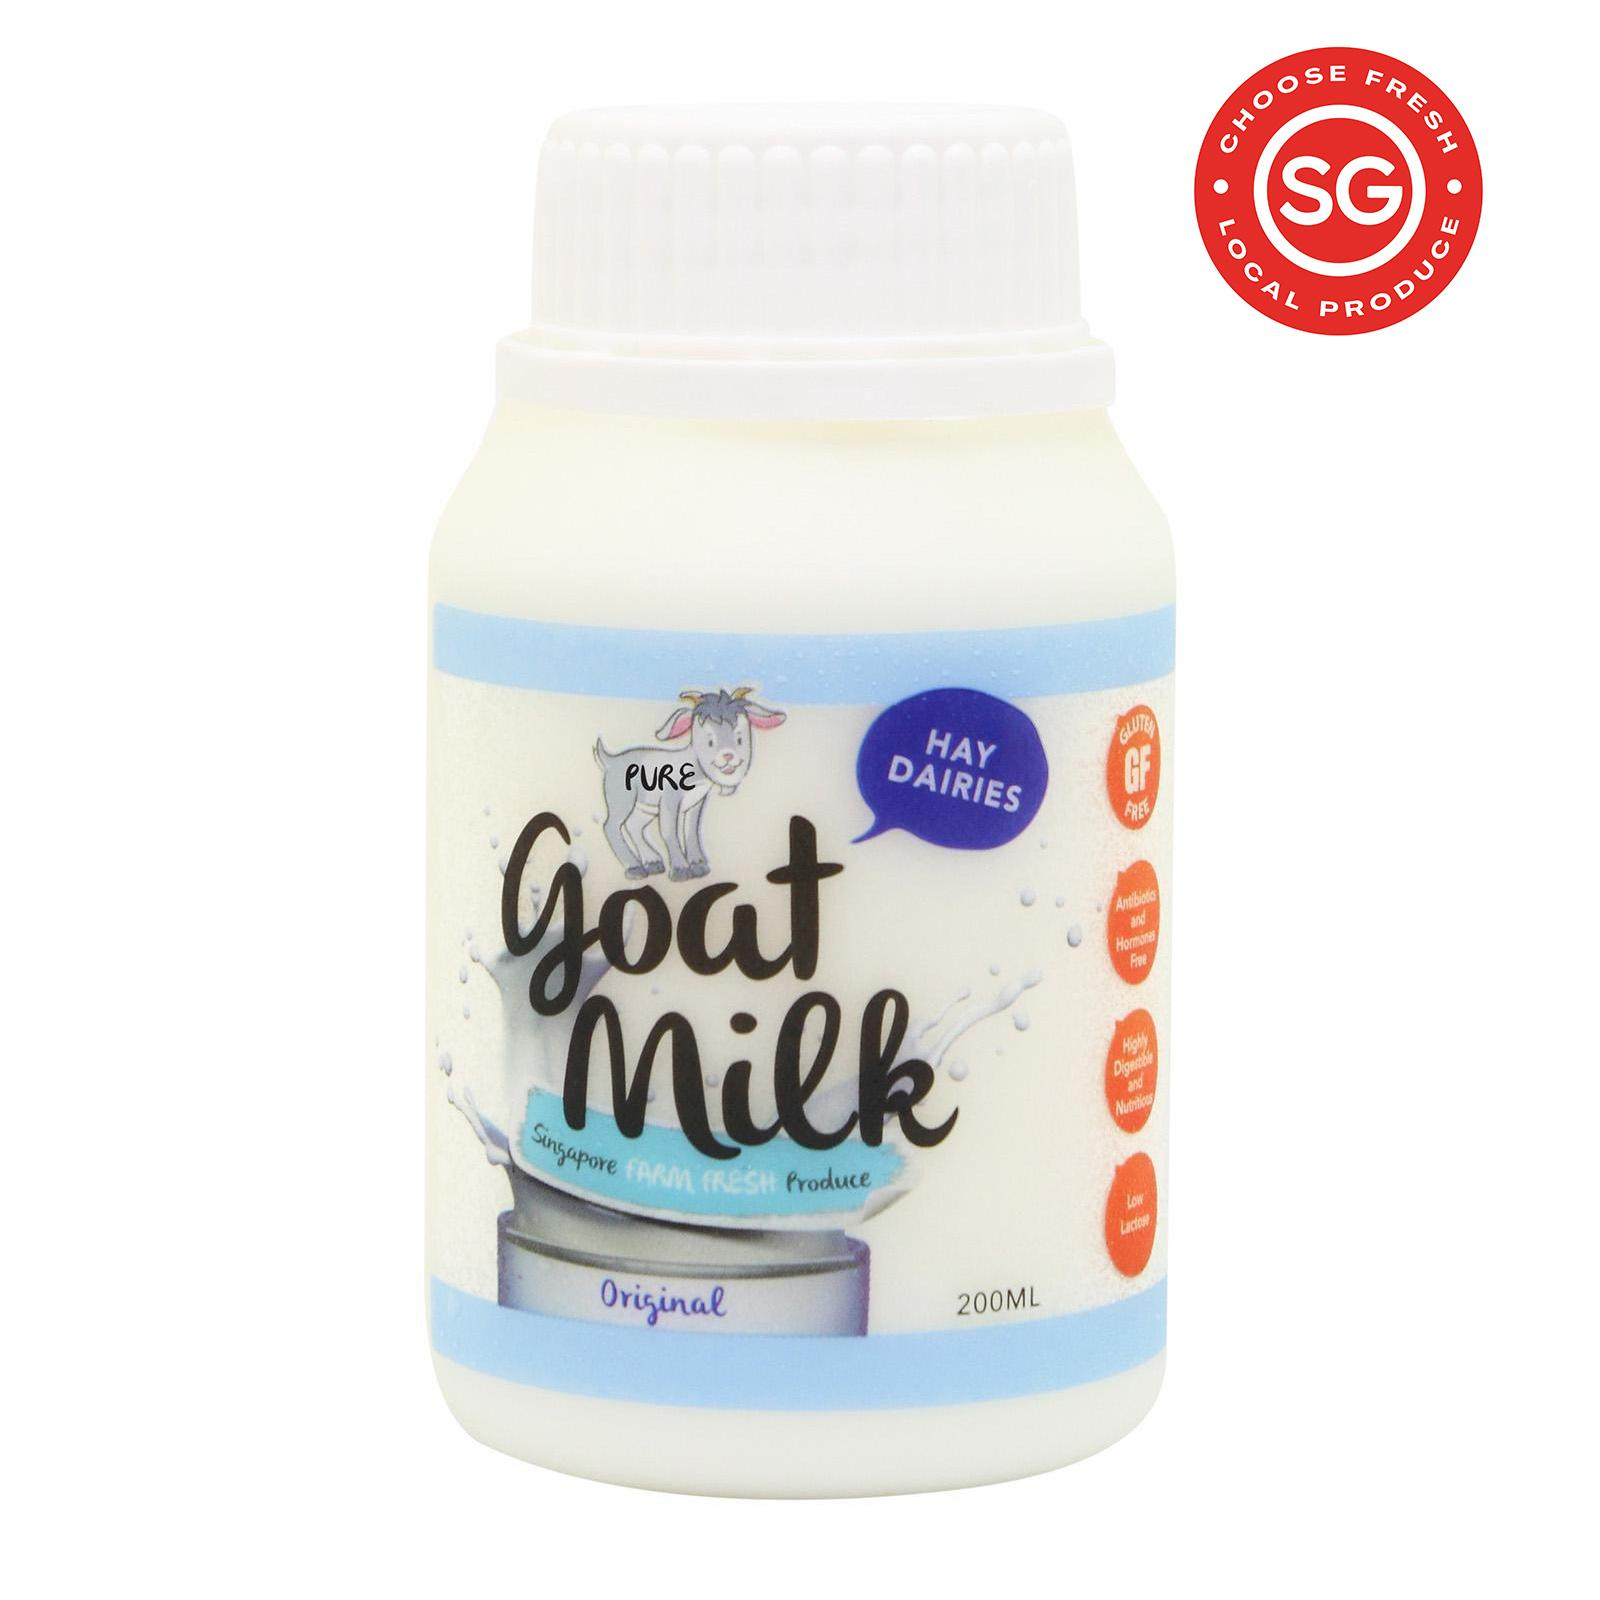 Hay Dairies Goat Milk Original 200ml